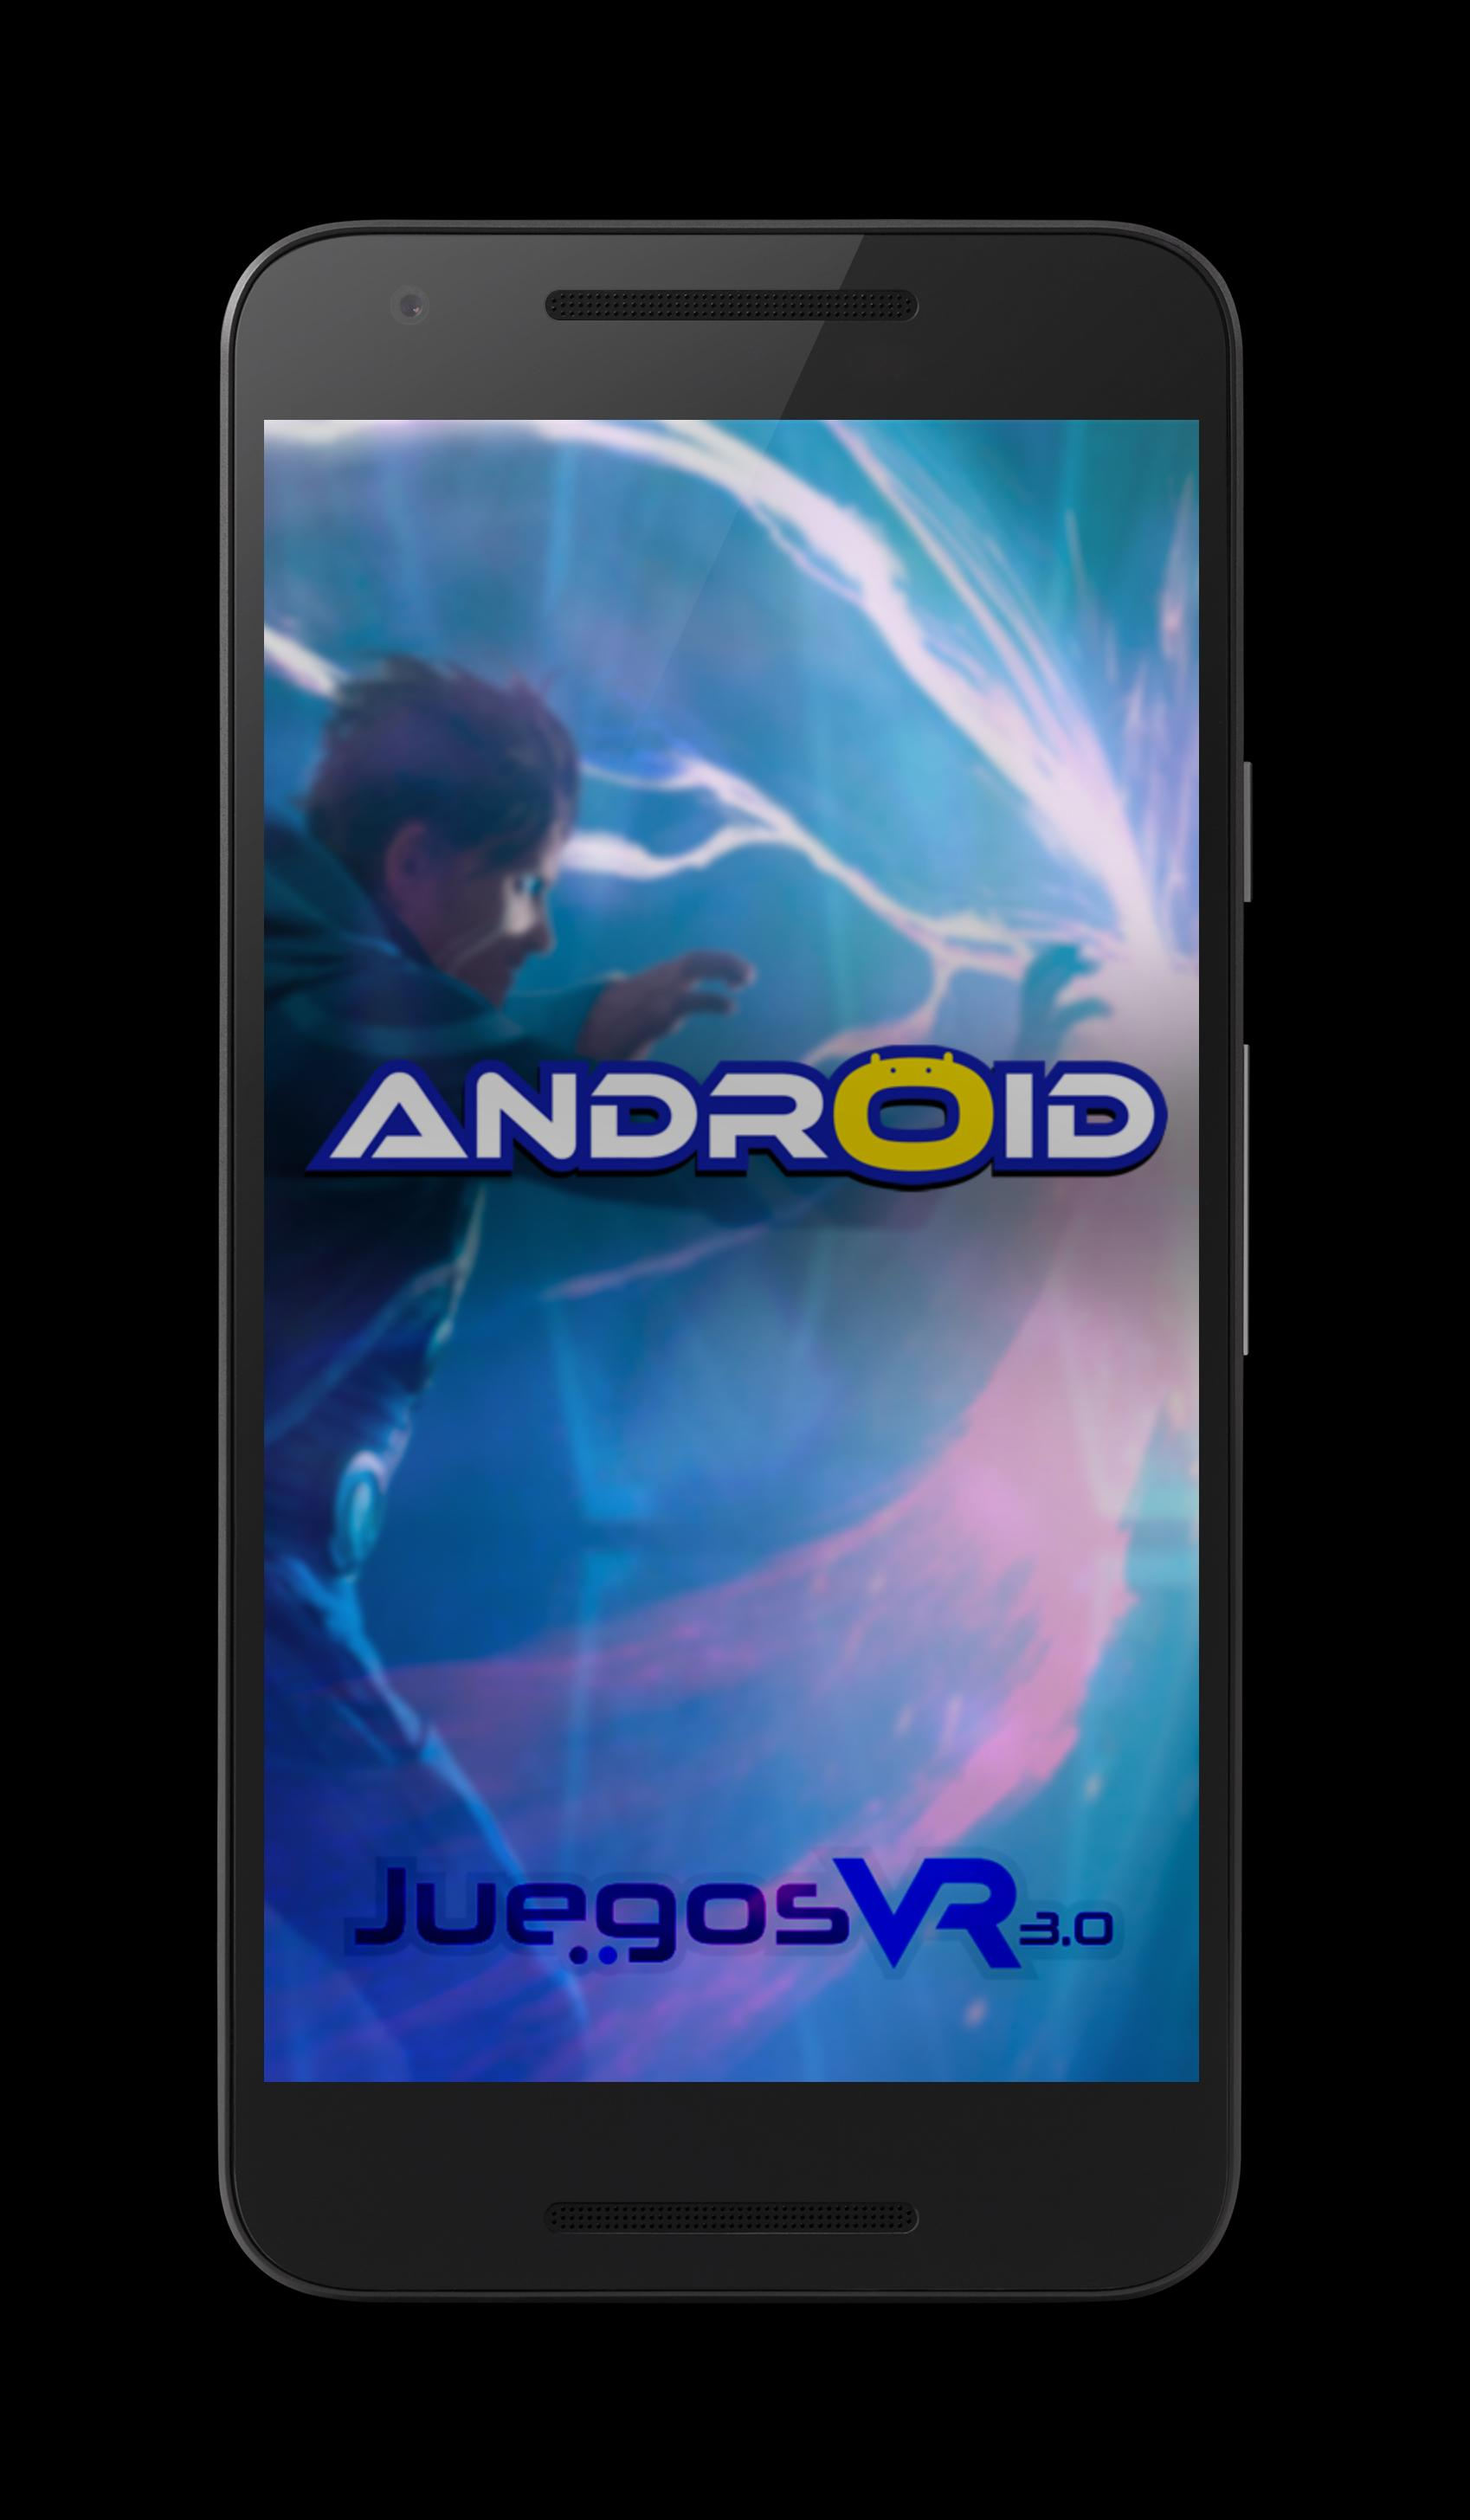 Games for Android VR 3 0 for Android - APK Download